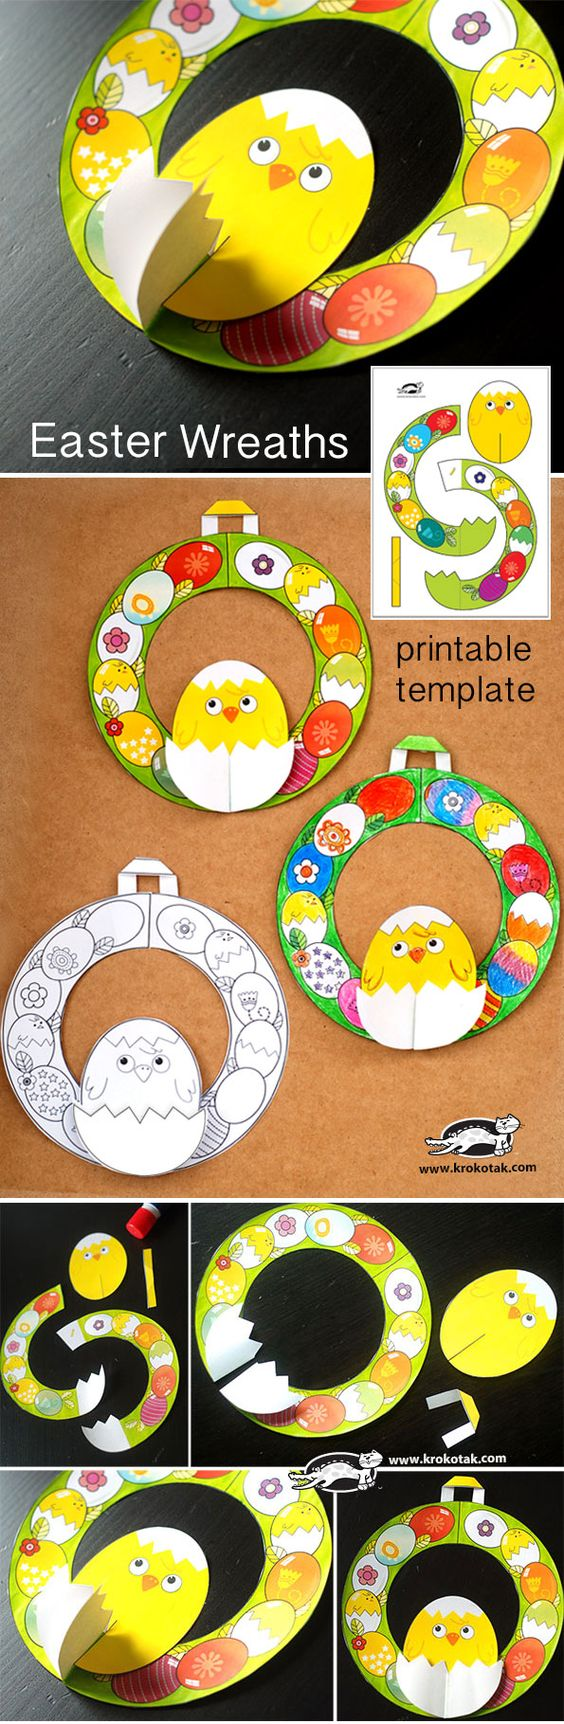 Easter Wreaths + templates: